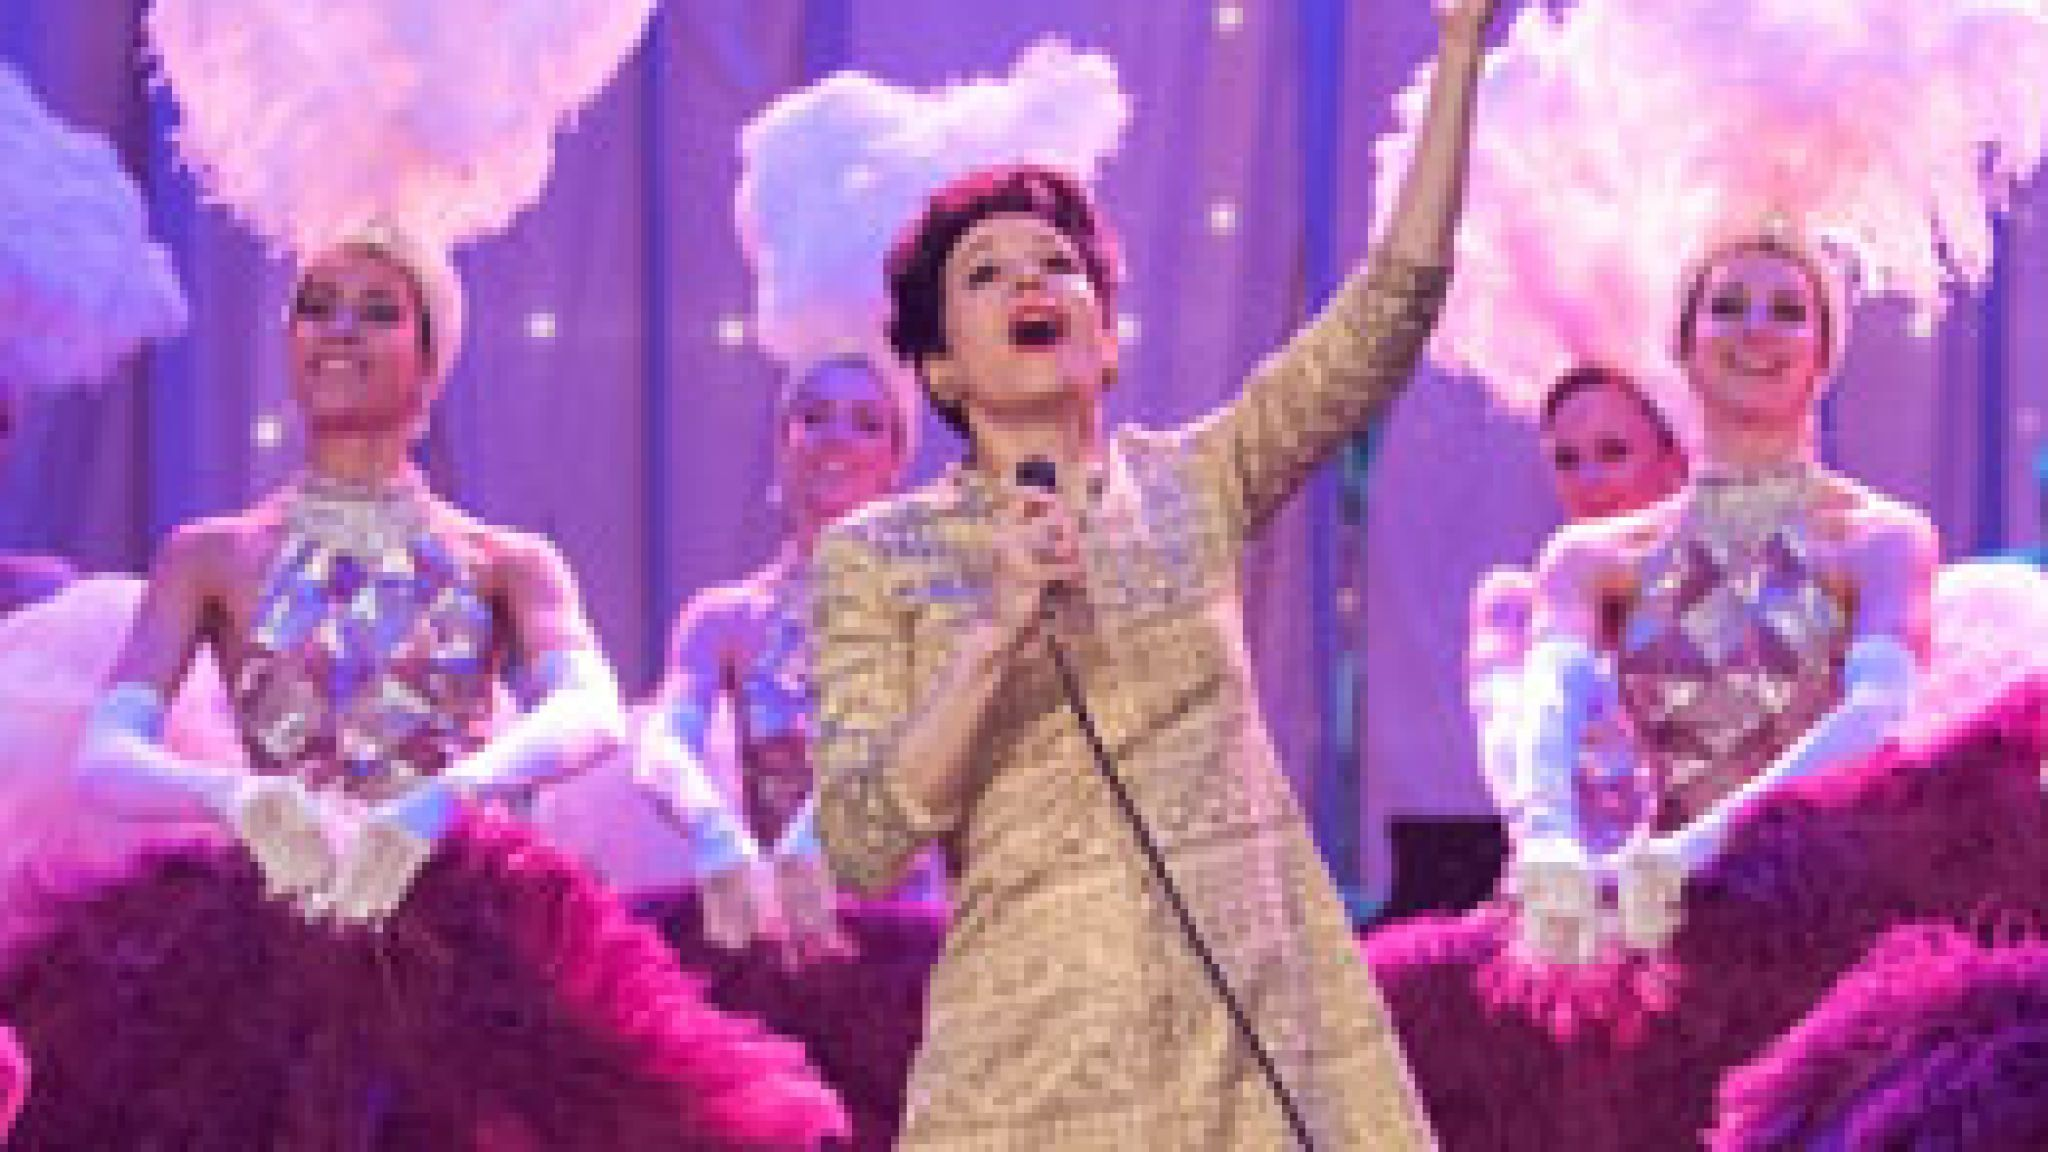 Renee Zellweger stars as Judy Garland in the new biopic, Judy